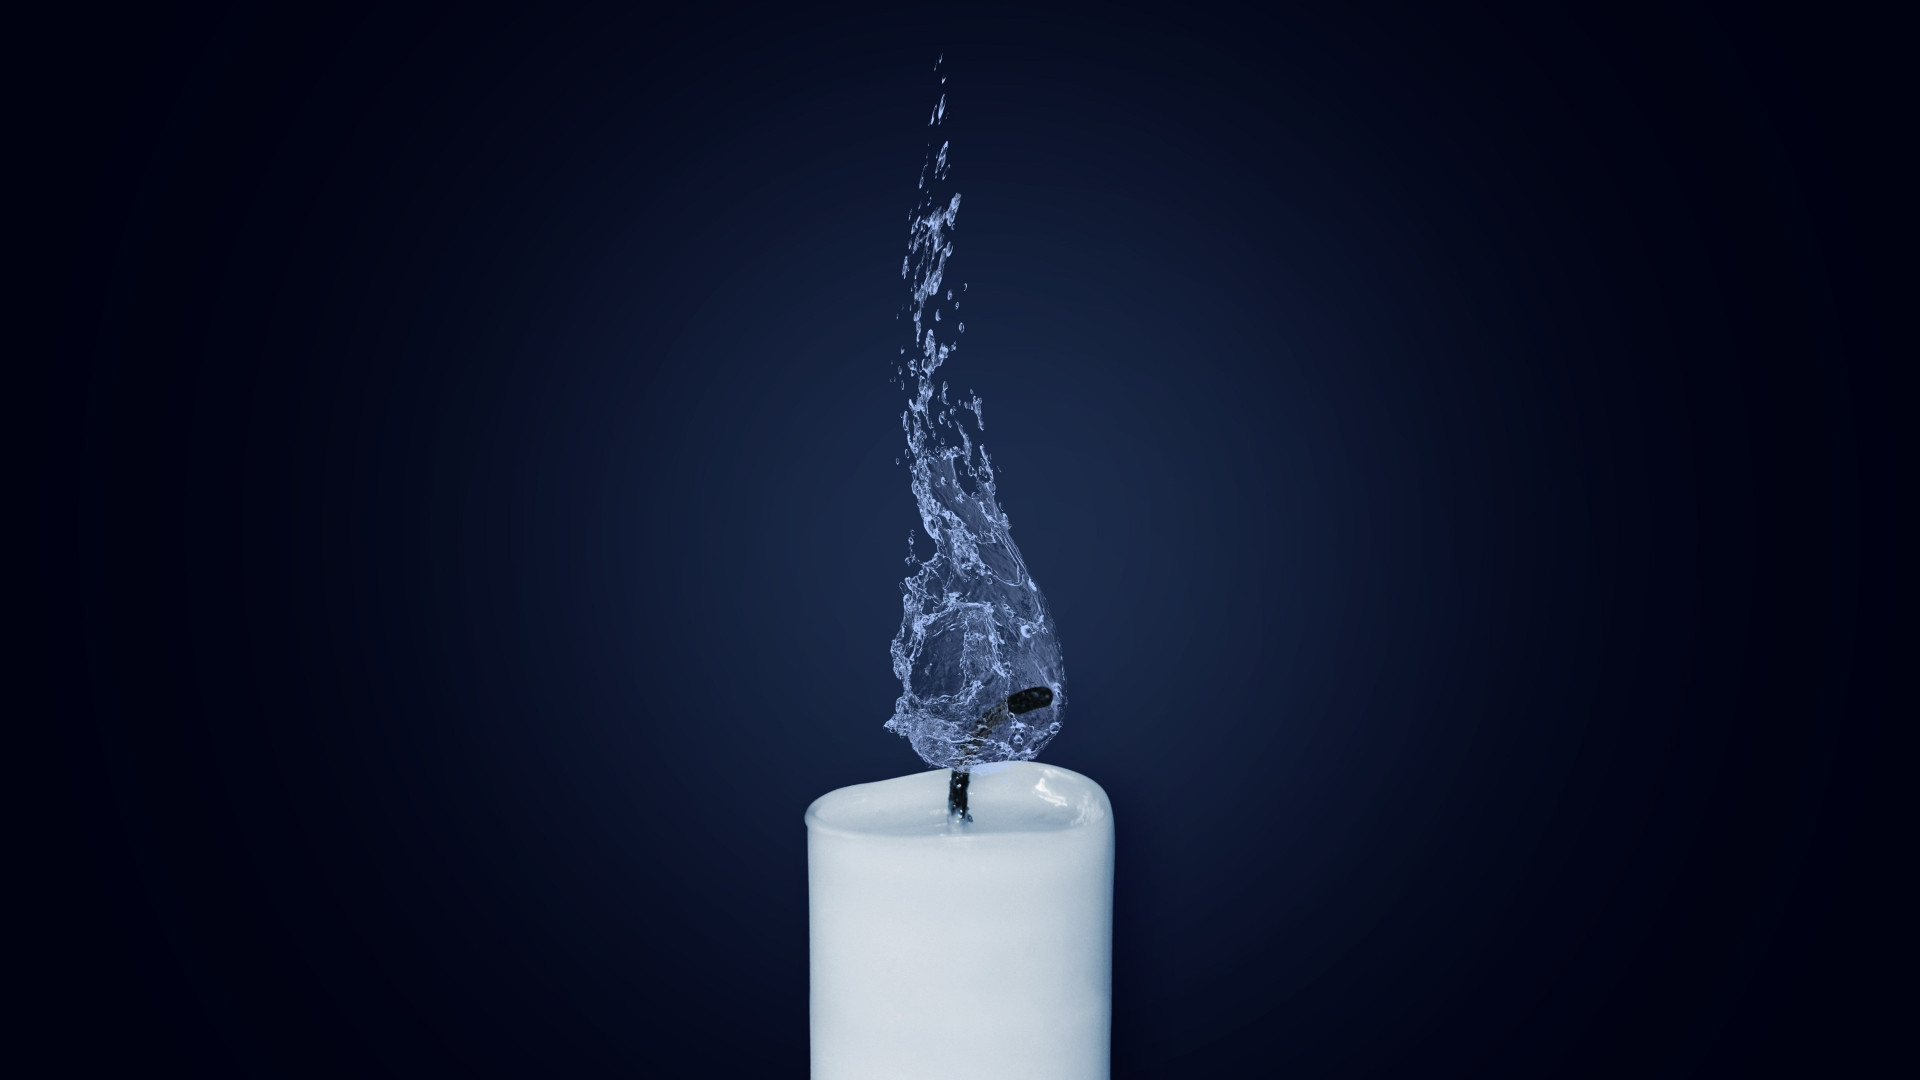 Water Flame. Candlelight | 1920x1080 wallpaper